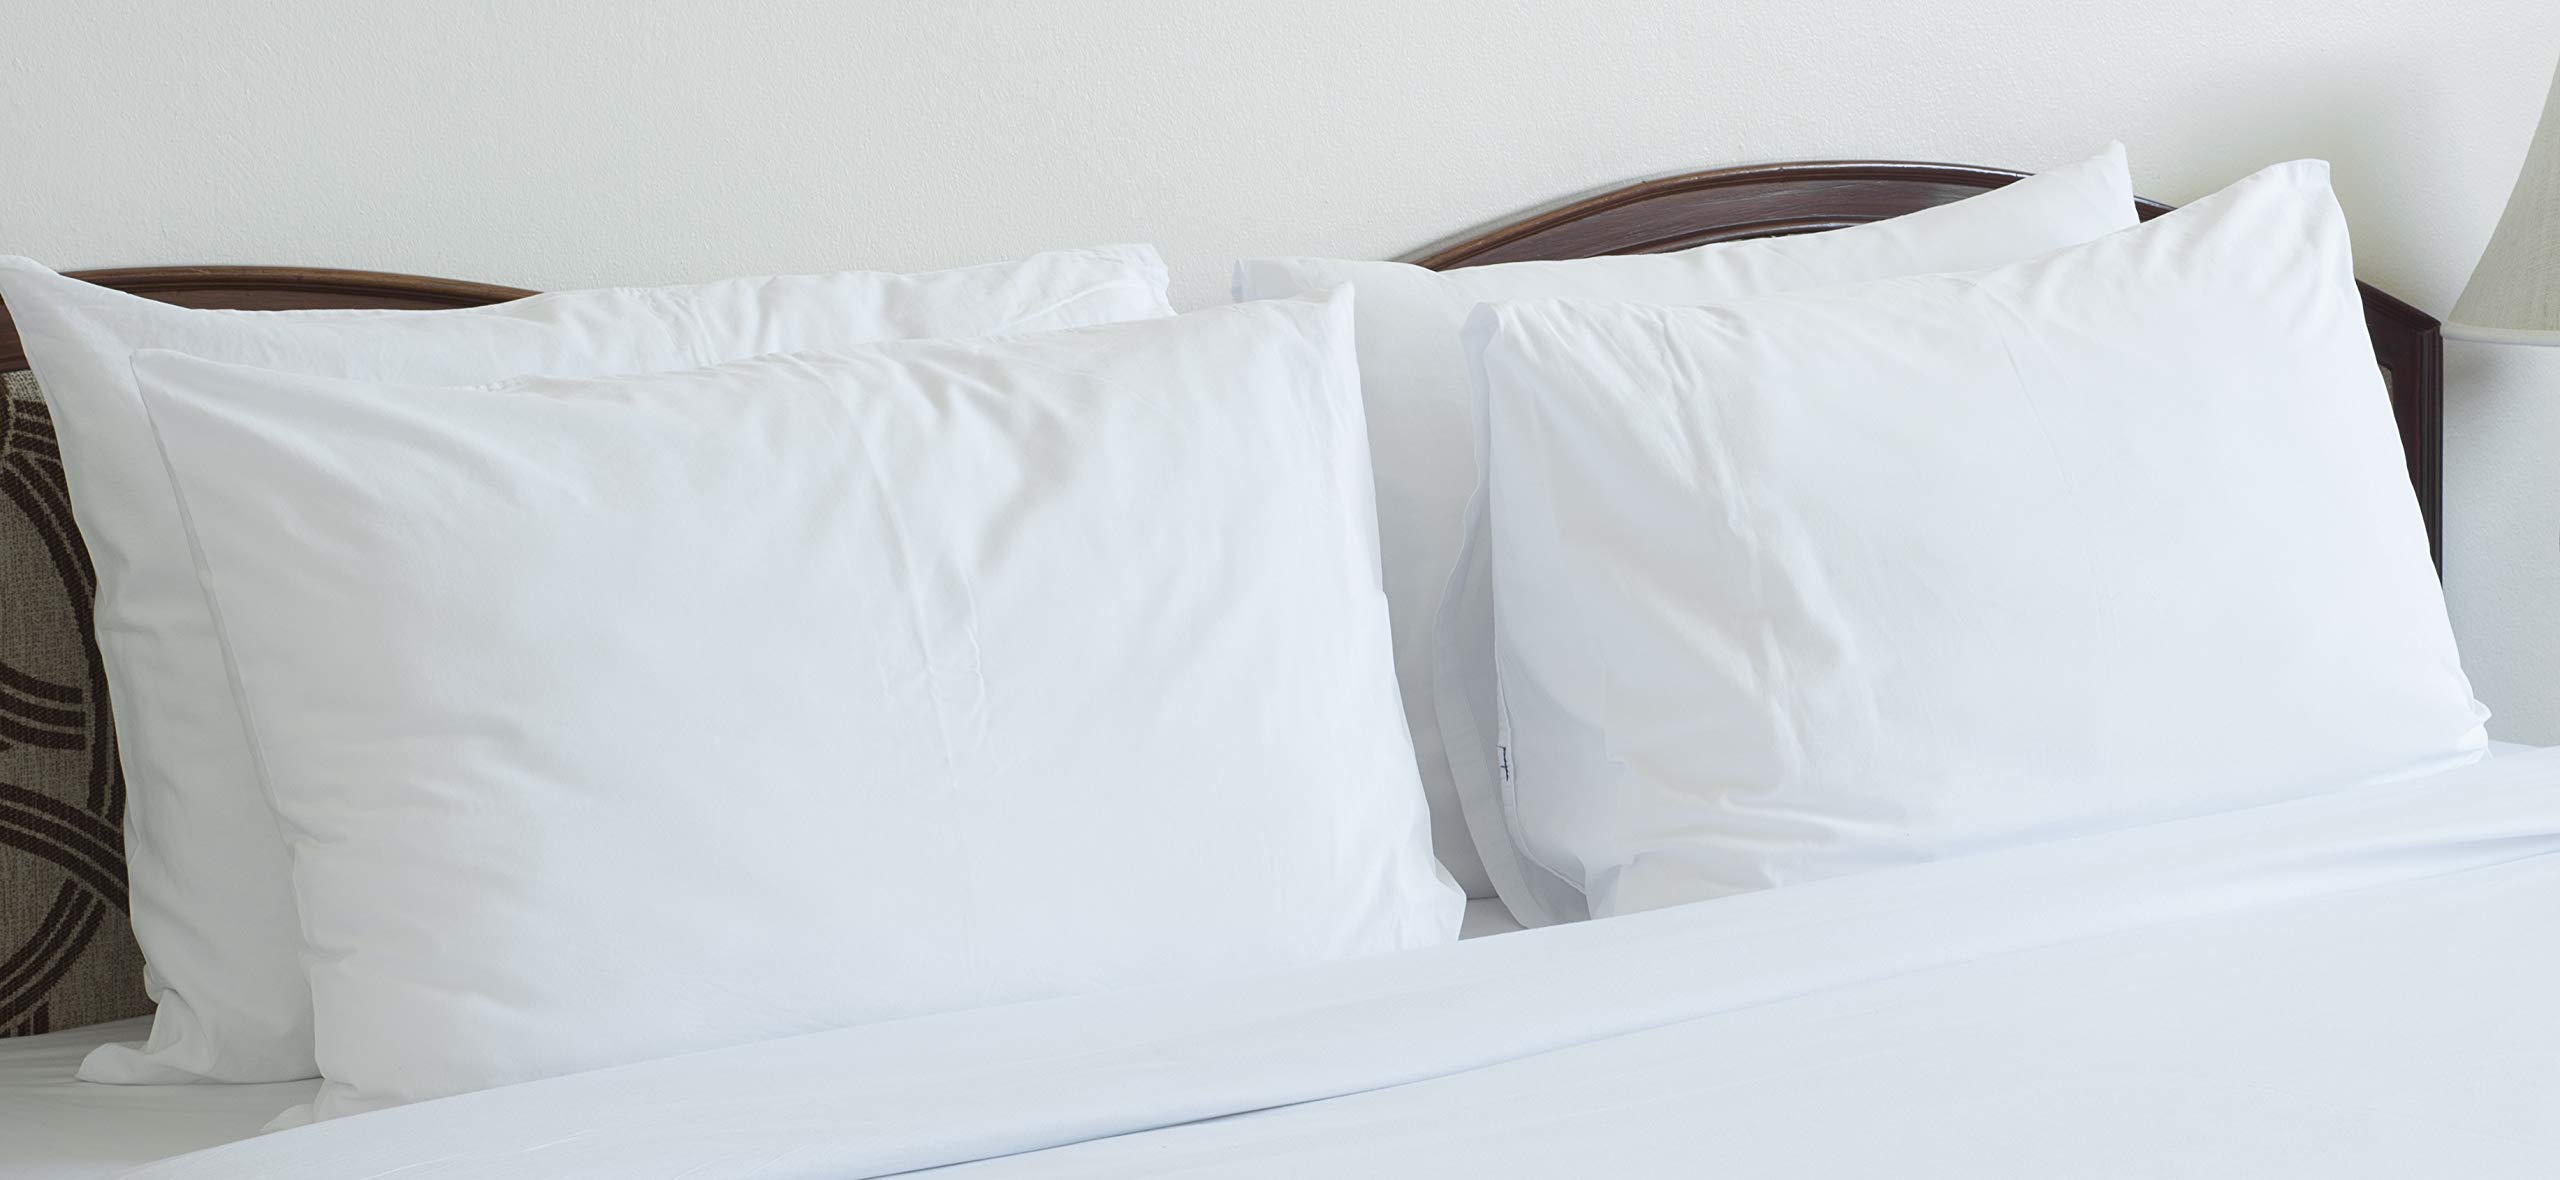 ''B'' Grade 24-Count Pillow Cases - Polycotton, Bulk Pack, 130 Thread Count (20x30 Inches Standard Sized), Physical Therapy Clinics, Hotels, Camps, Seminaries, Churches, Schools, Parties & Chair Covers